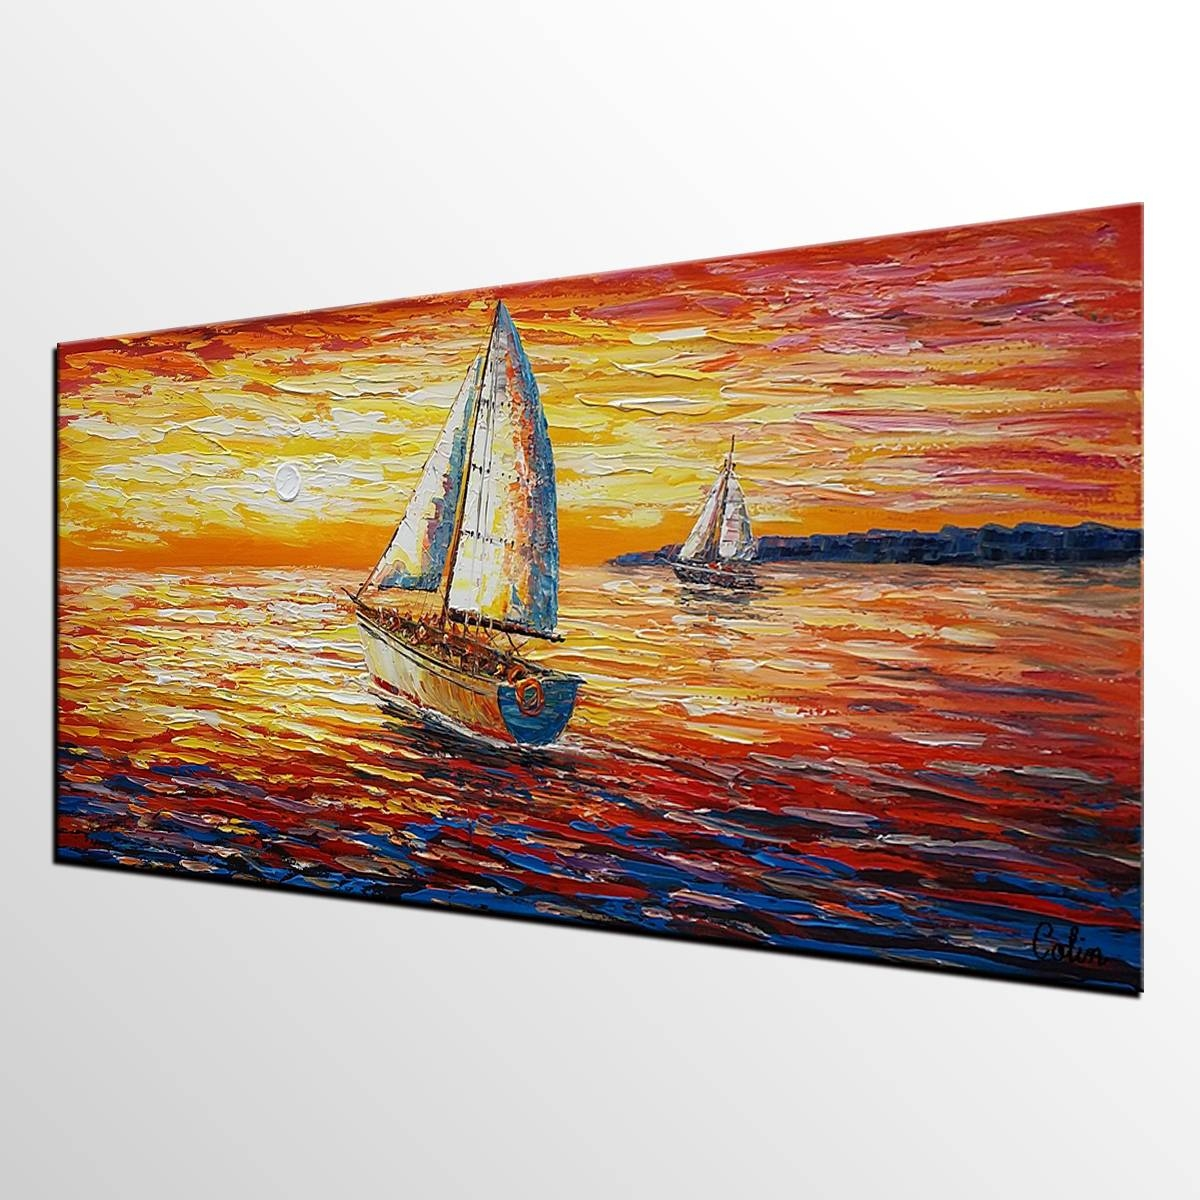 Original Wall Art, Sail Boat Painting, Seascape Painting, Abstract In Latest Boat Wall Art (View 12 of 20)